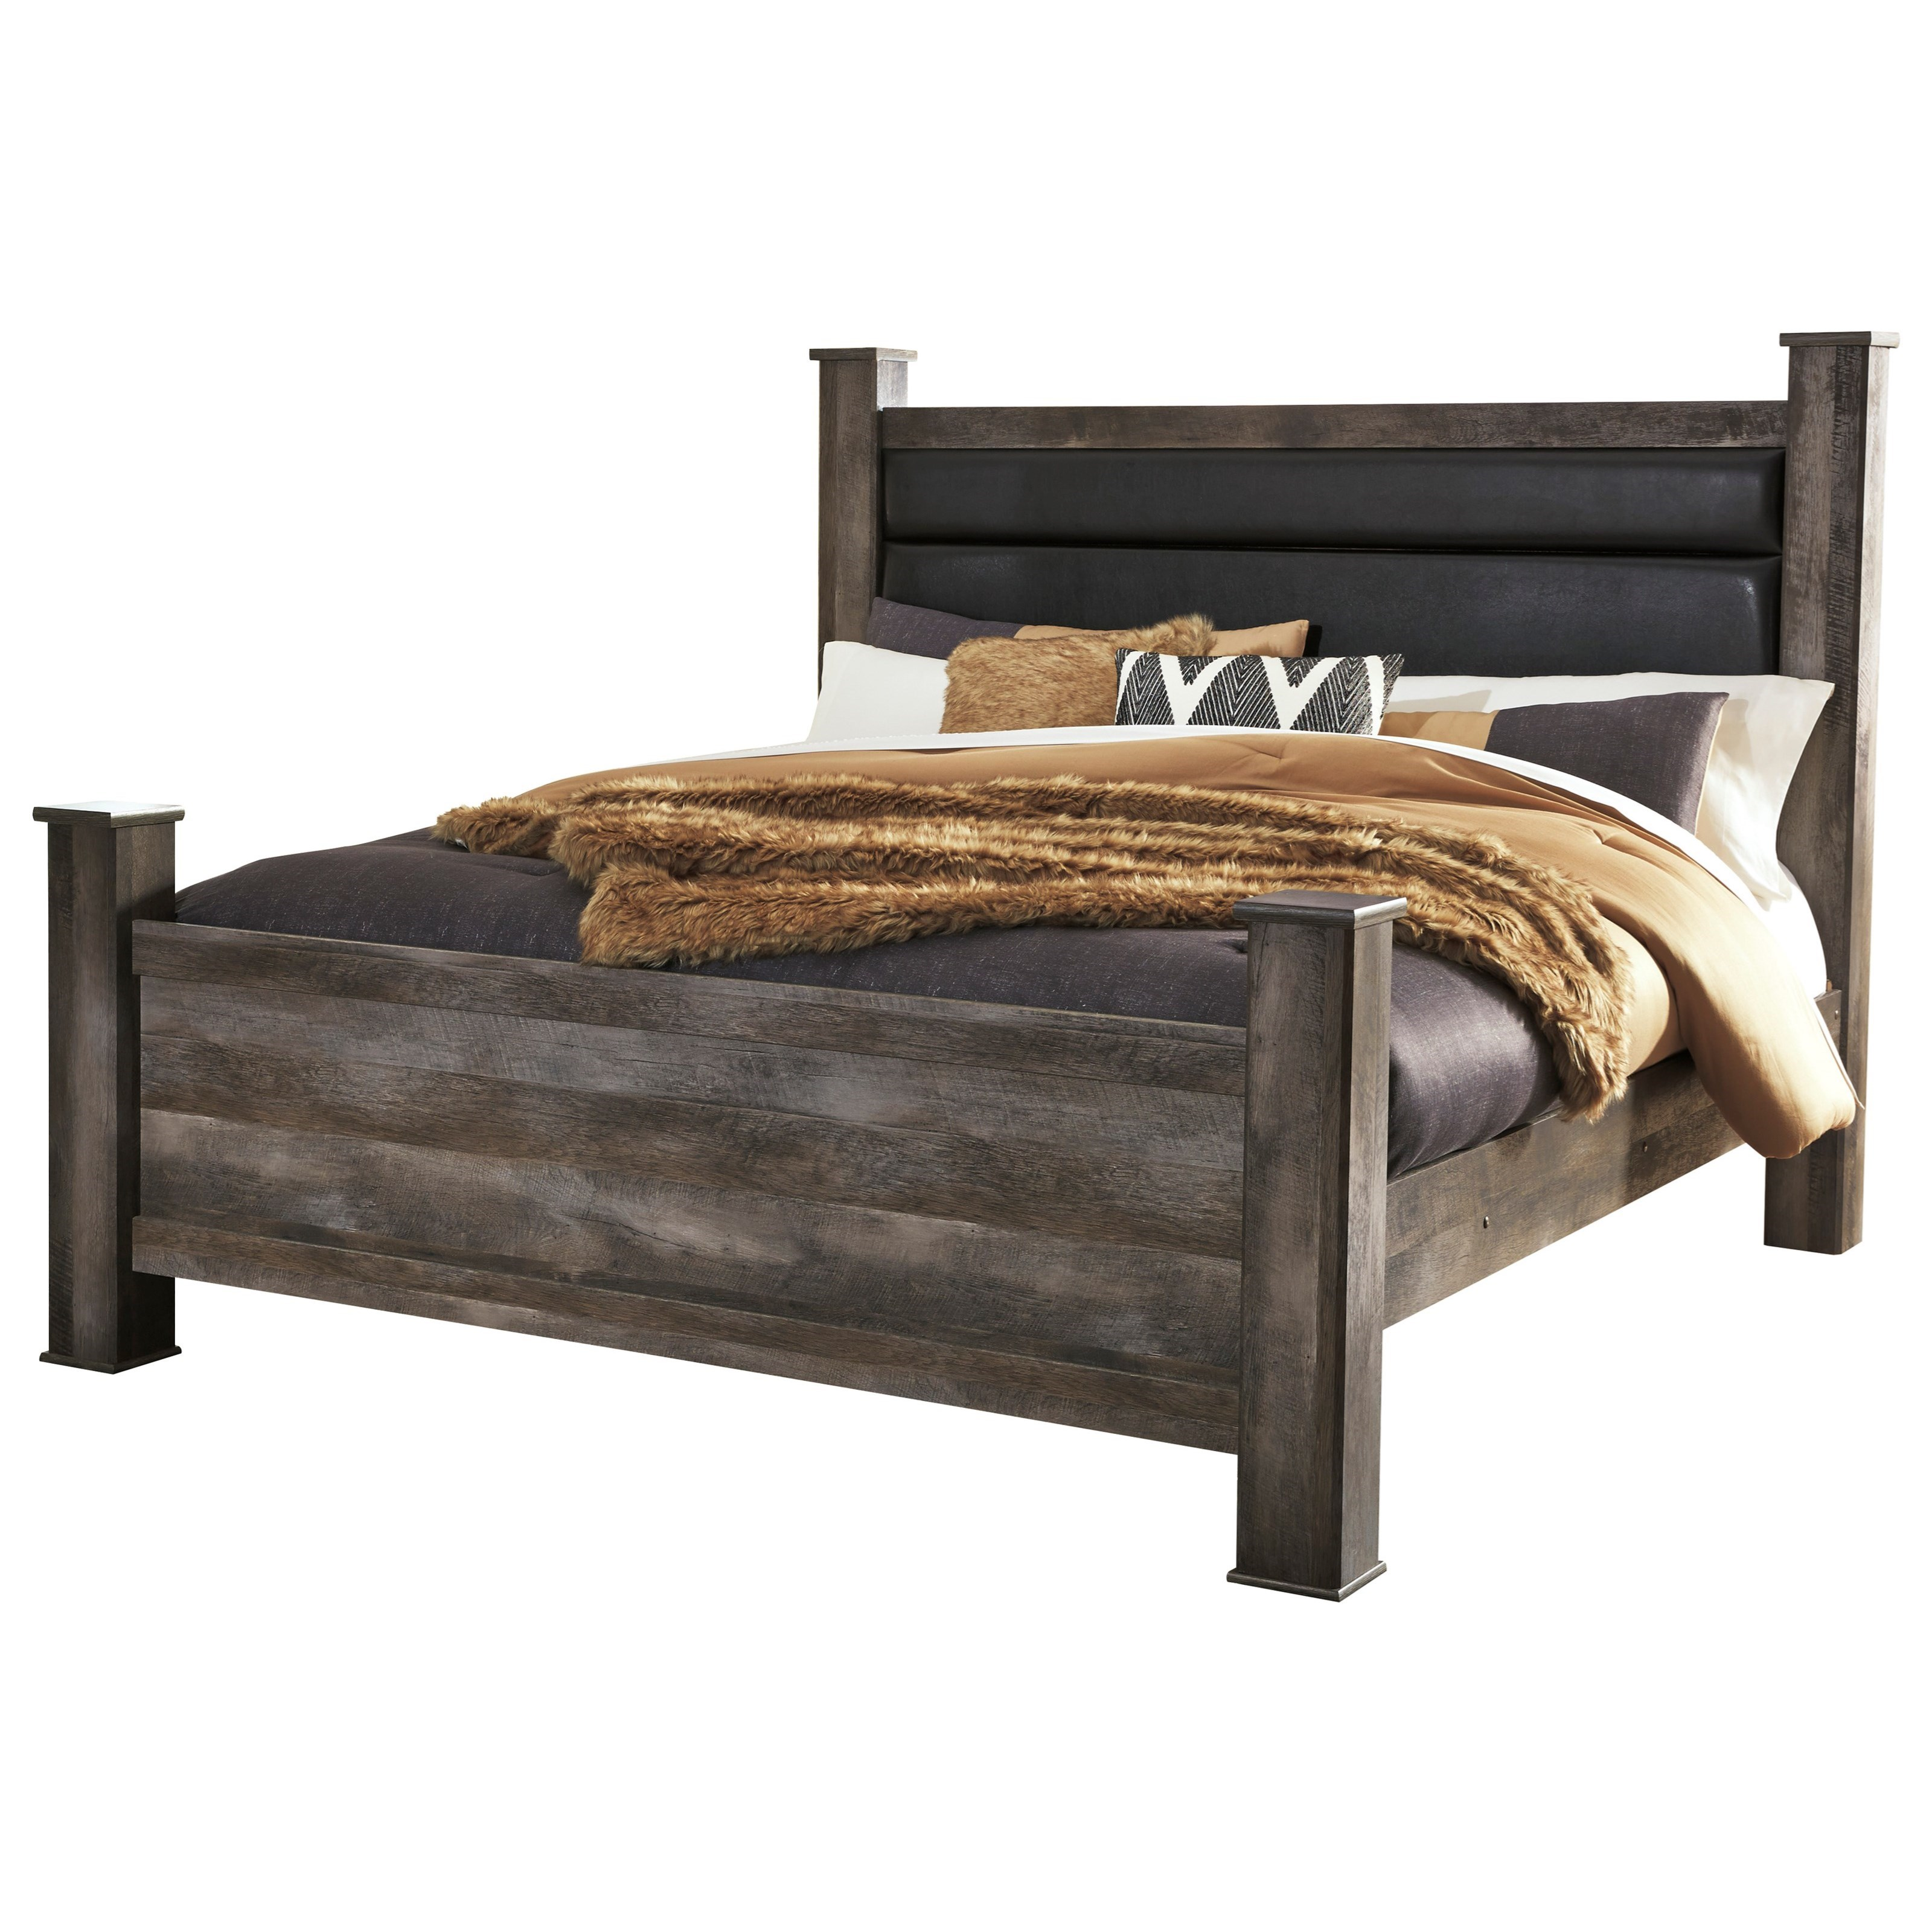 Signature Design By Ashley Wynnlow King Rustic Poster Bed With Upholstered Headboard Rife S